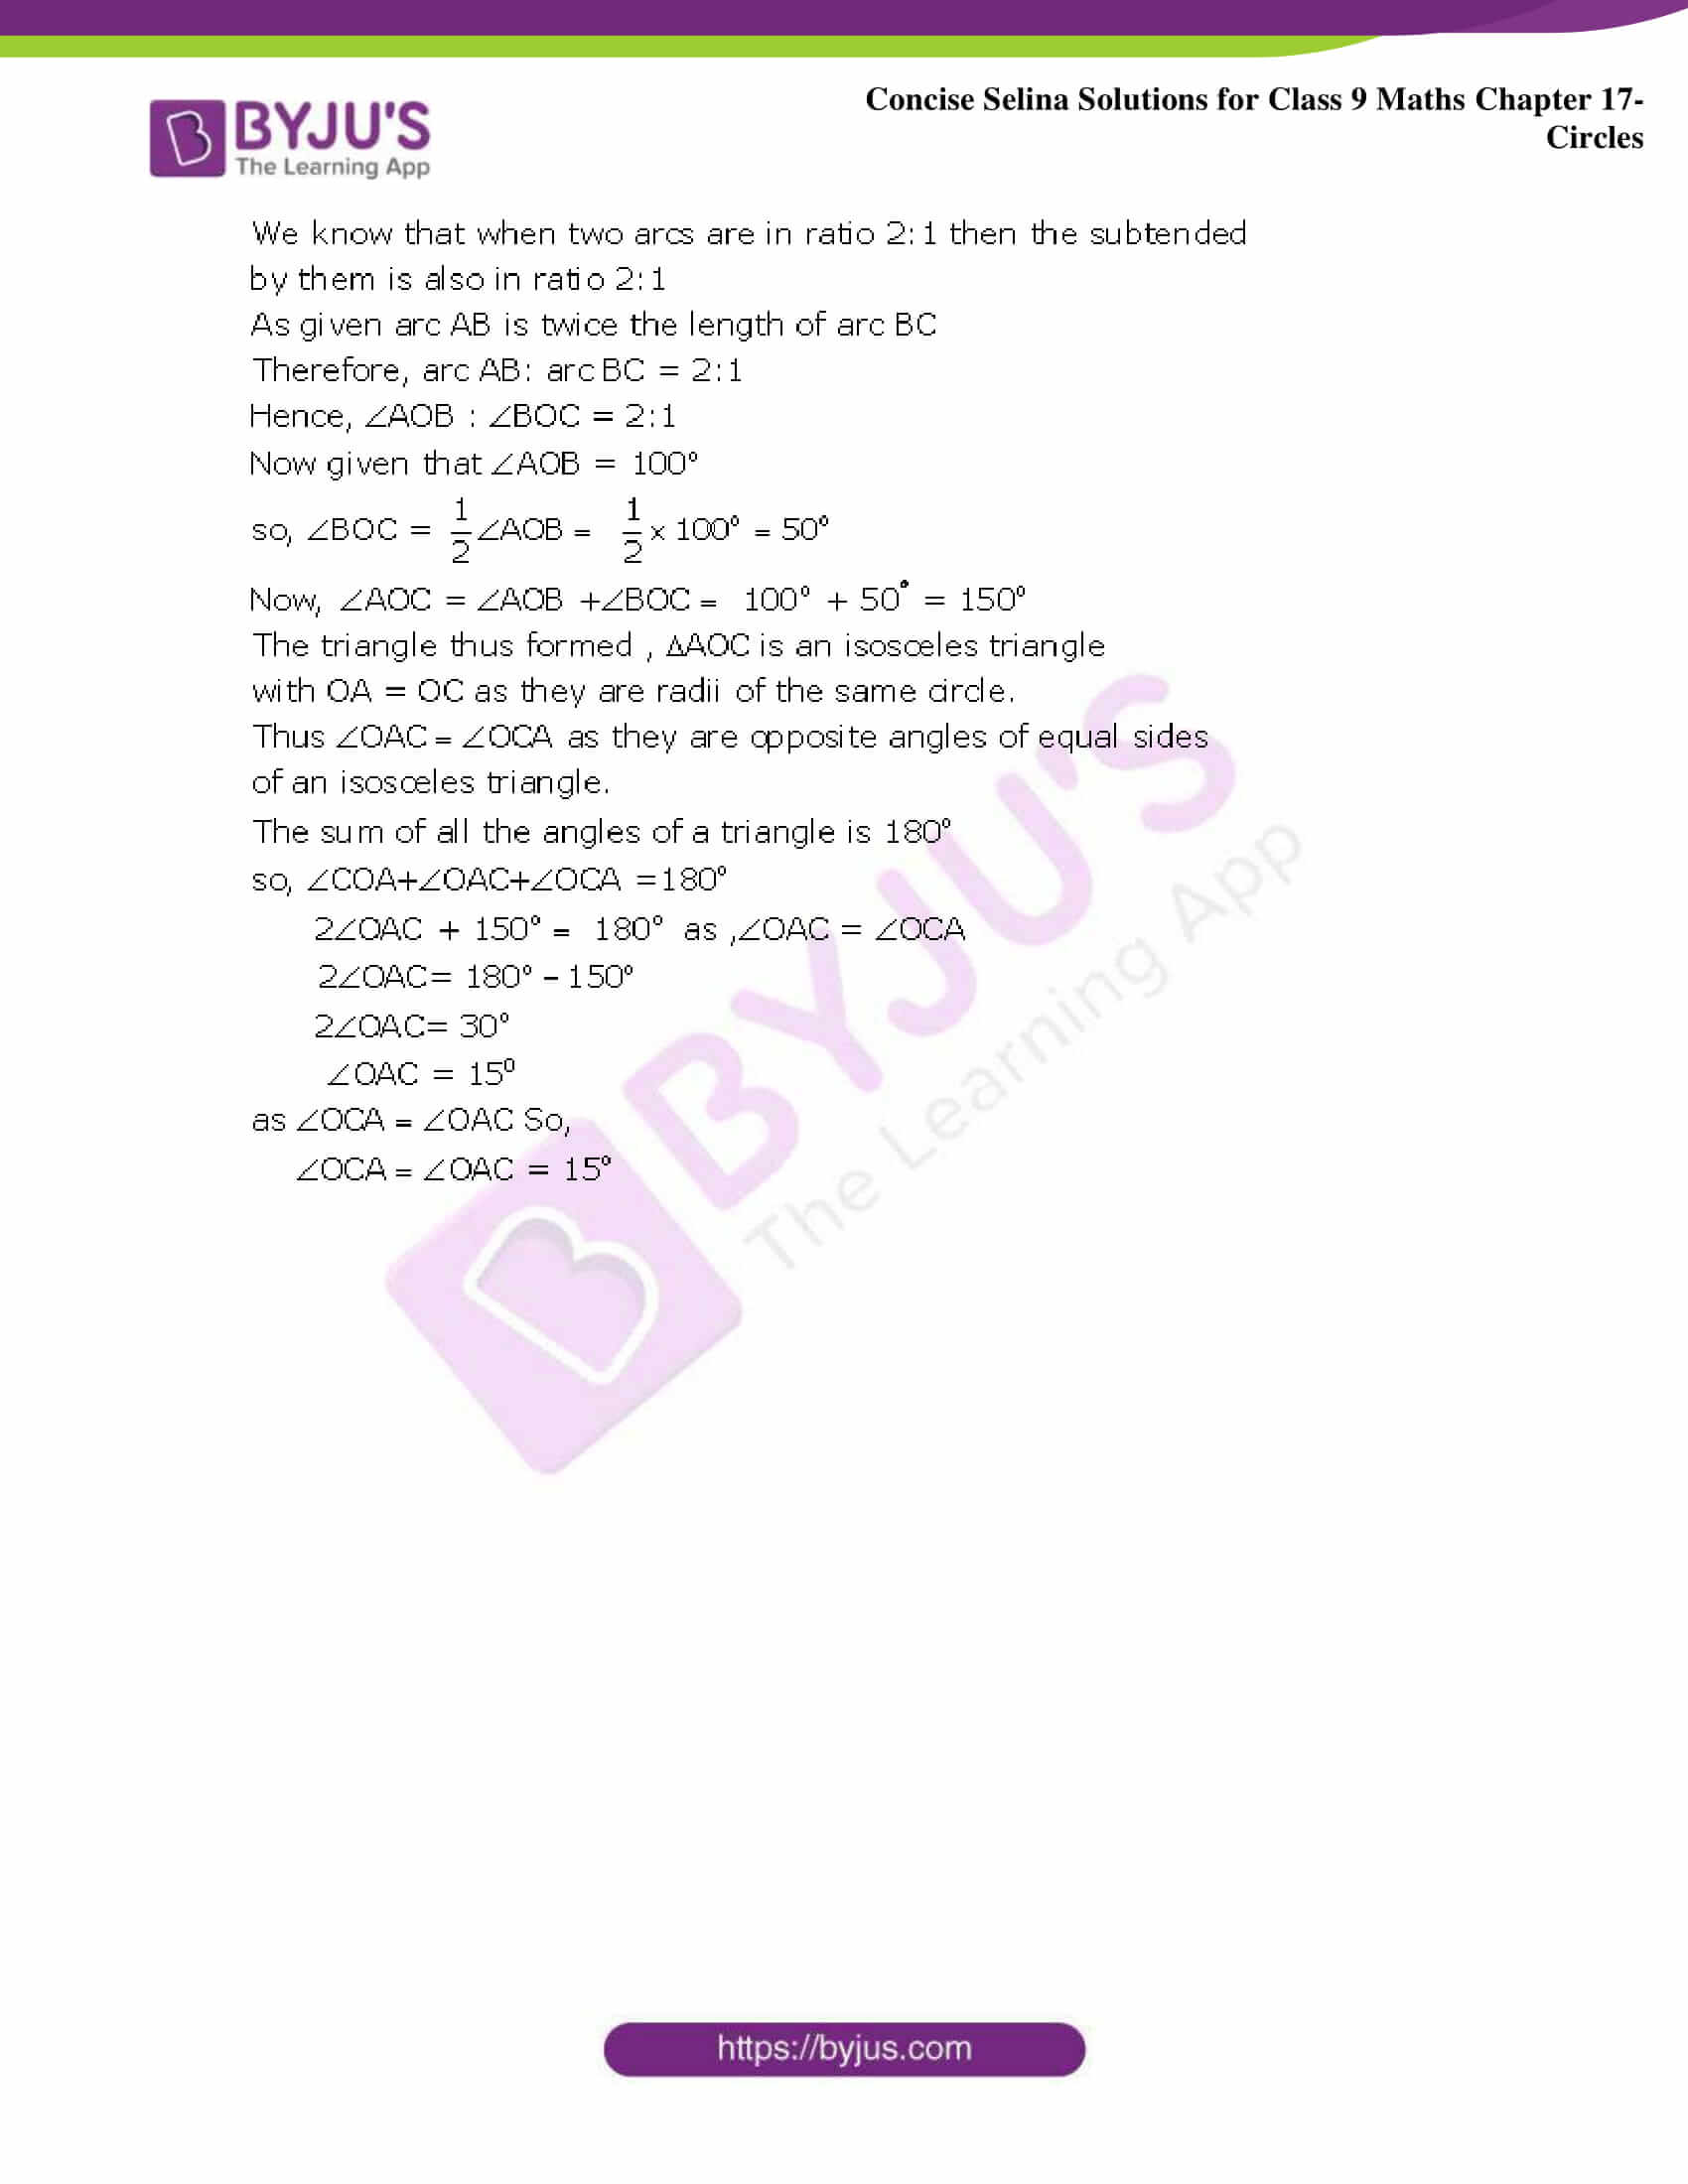 Concise Selina Solutions Class 9 Maths Chapter 17 Circles part 28